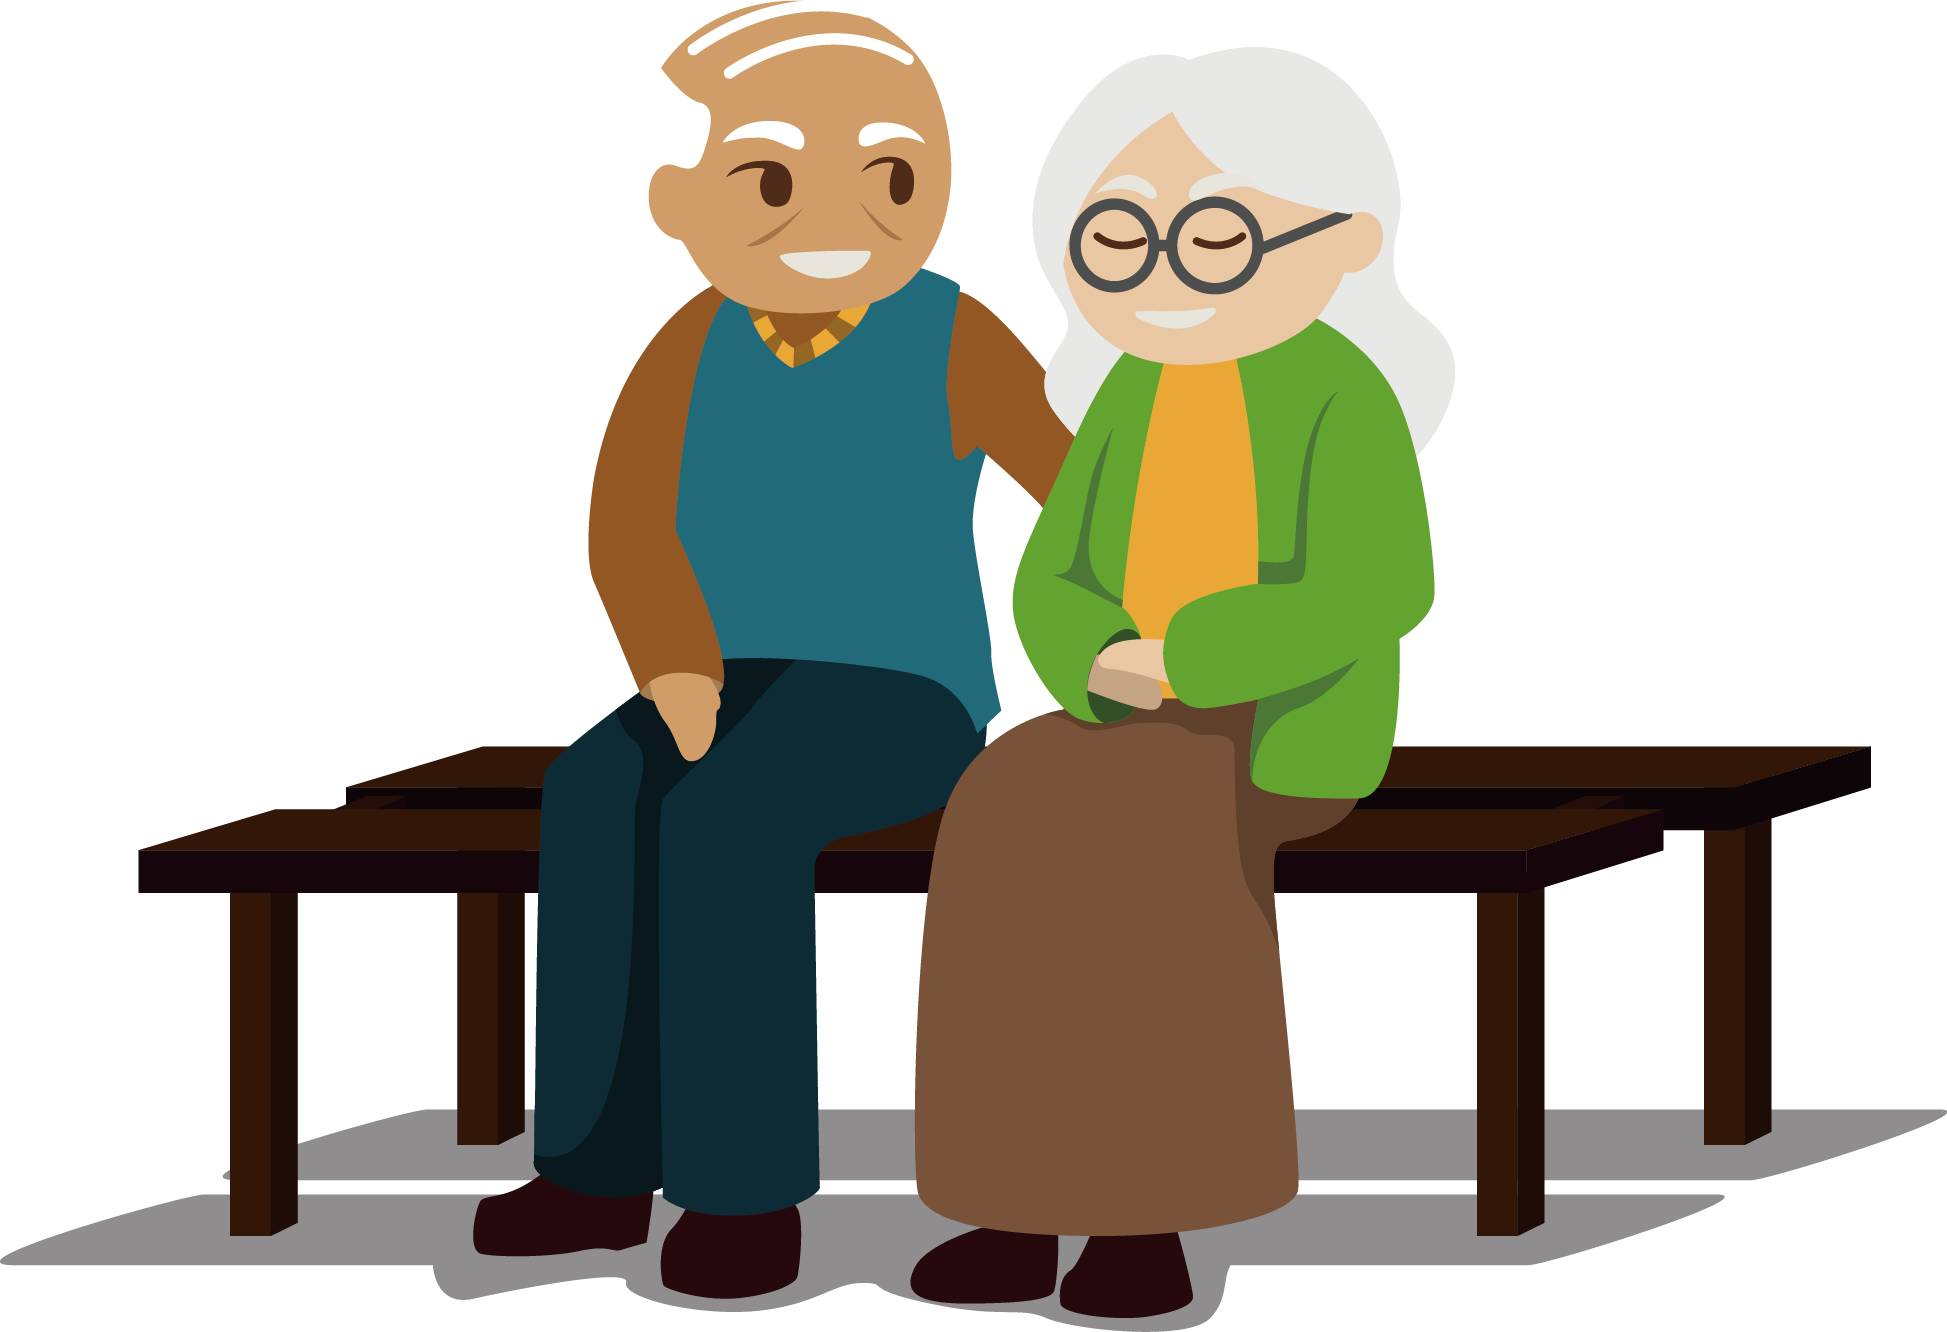 Investment pension saving old. Couple clipart retirement